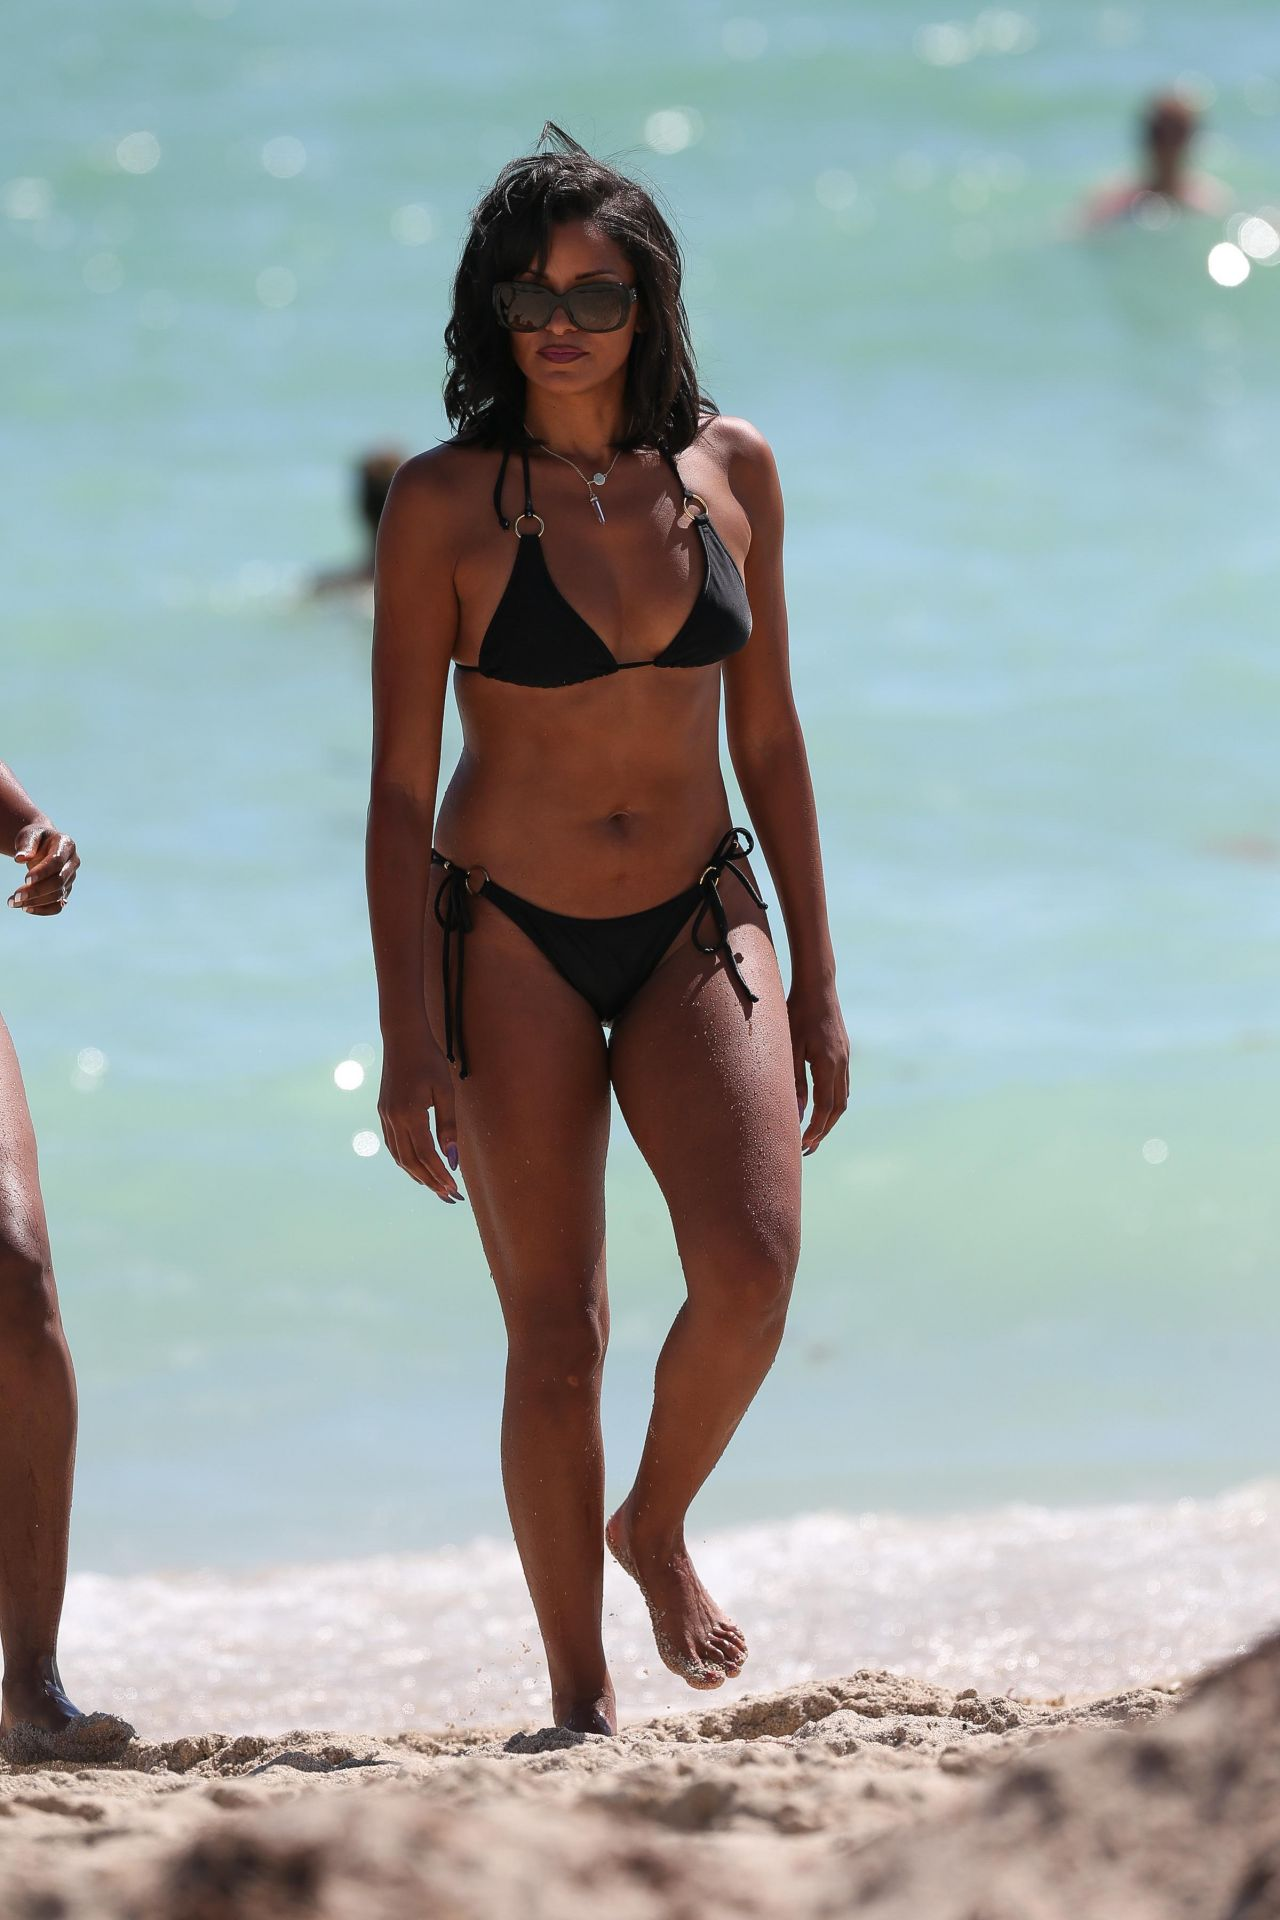 Top 16 Miss Universe 2017 >> Claudia Jordan in a Black Triangle Top Bikini - Miami Beach 10/15/2017